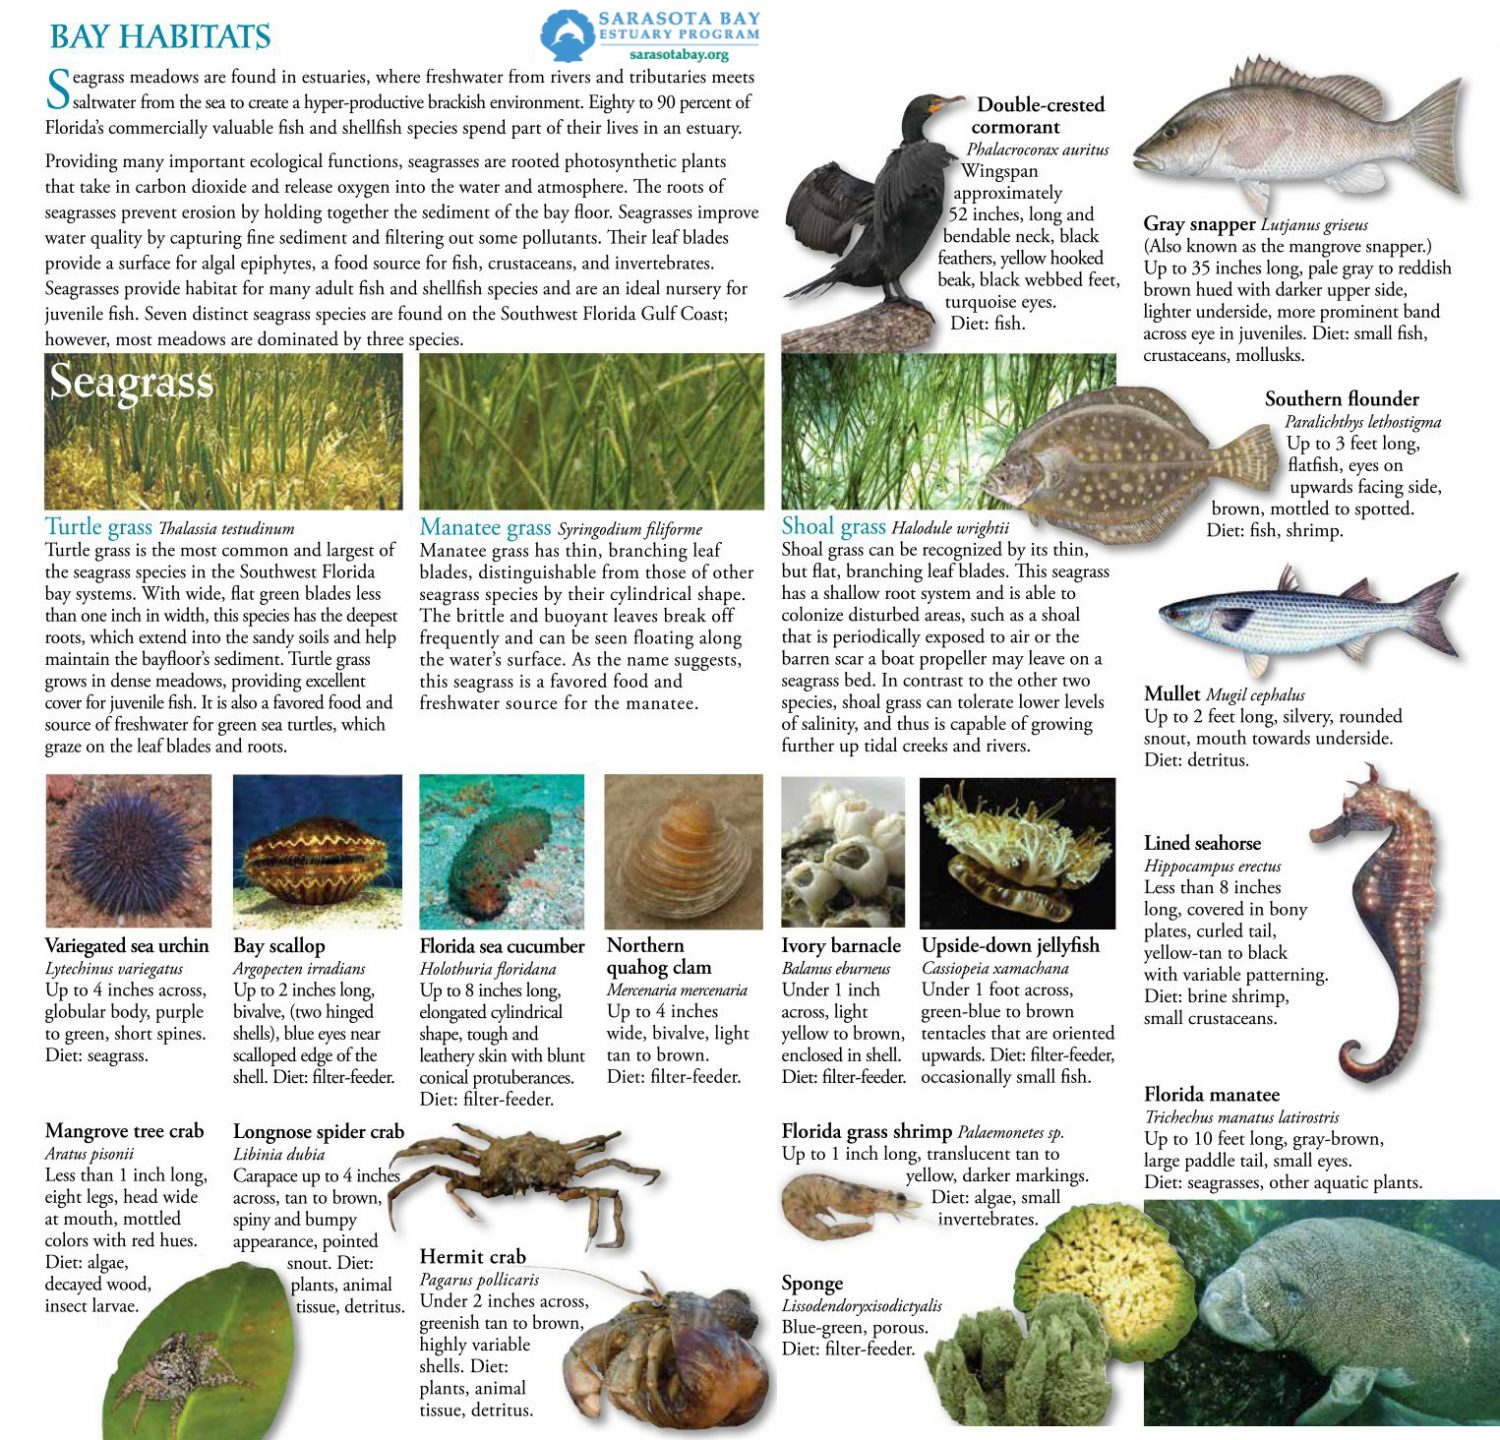 Field Guide – Sarasota Bay Estuary Program